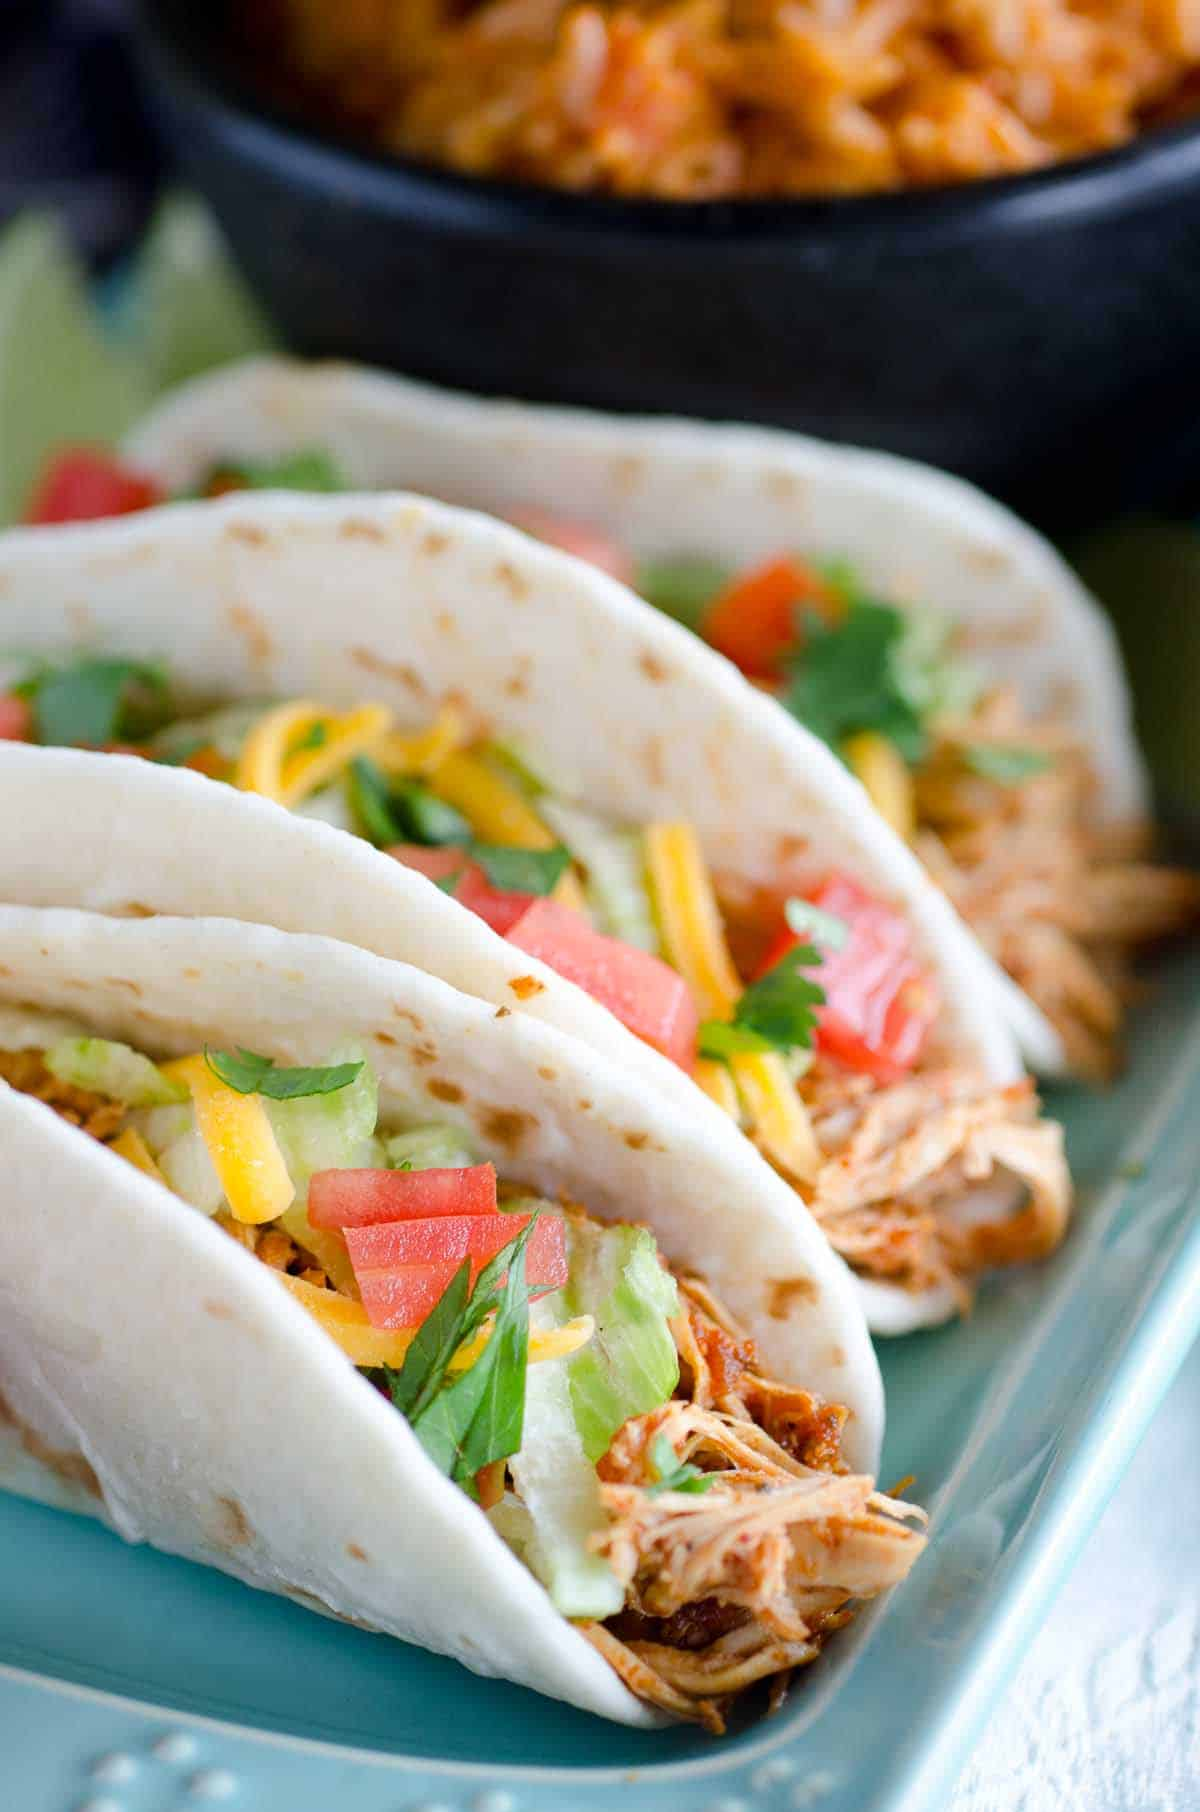 three chicken tacos on a plate